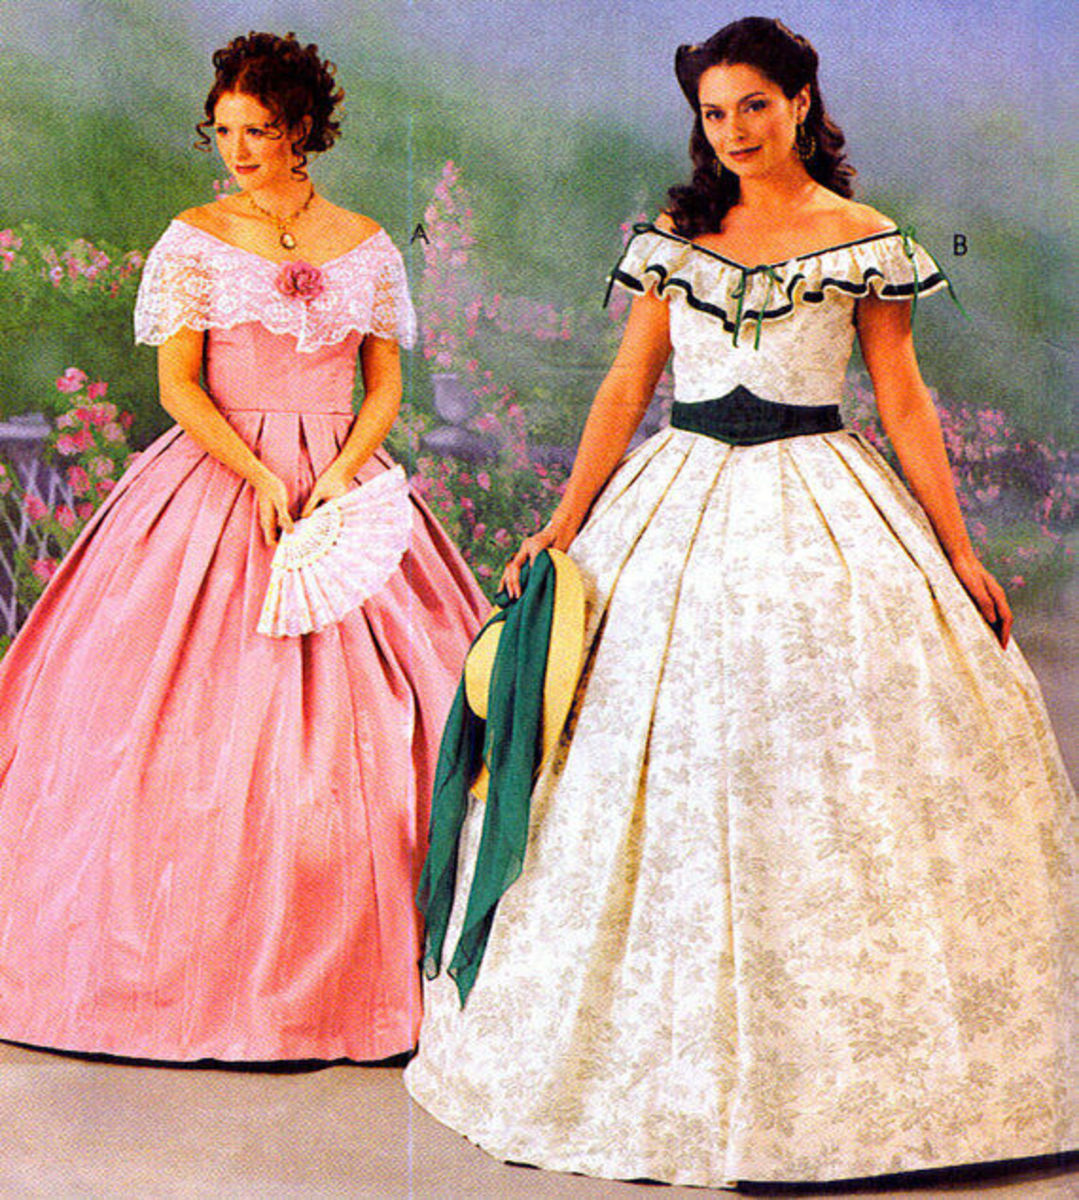 Southern belles in their traditional dresses.